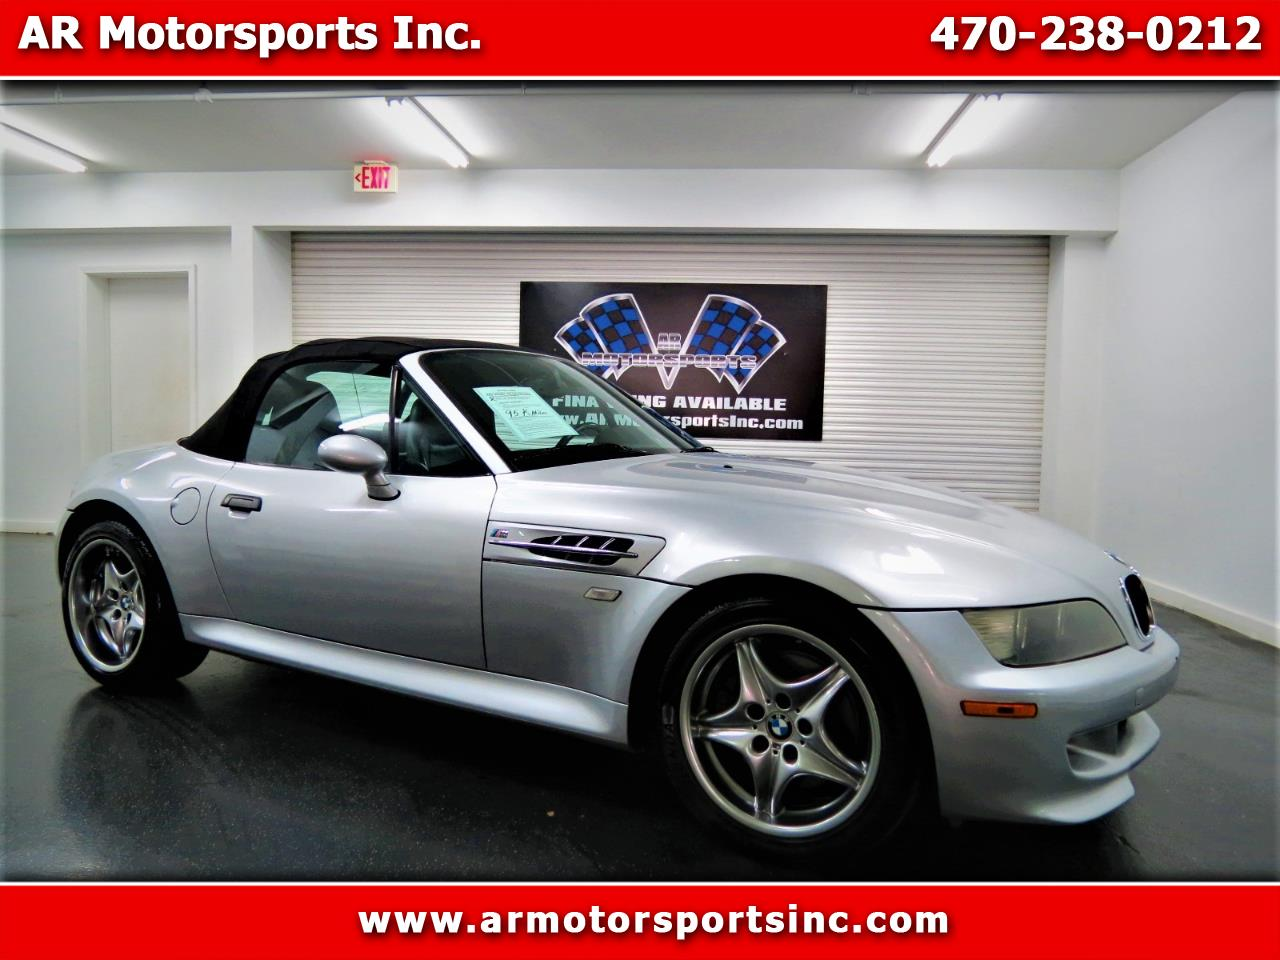 2002 BMW M Roadster Manual Transmission